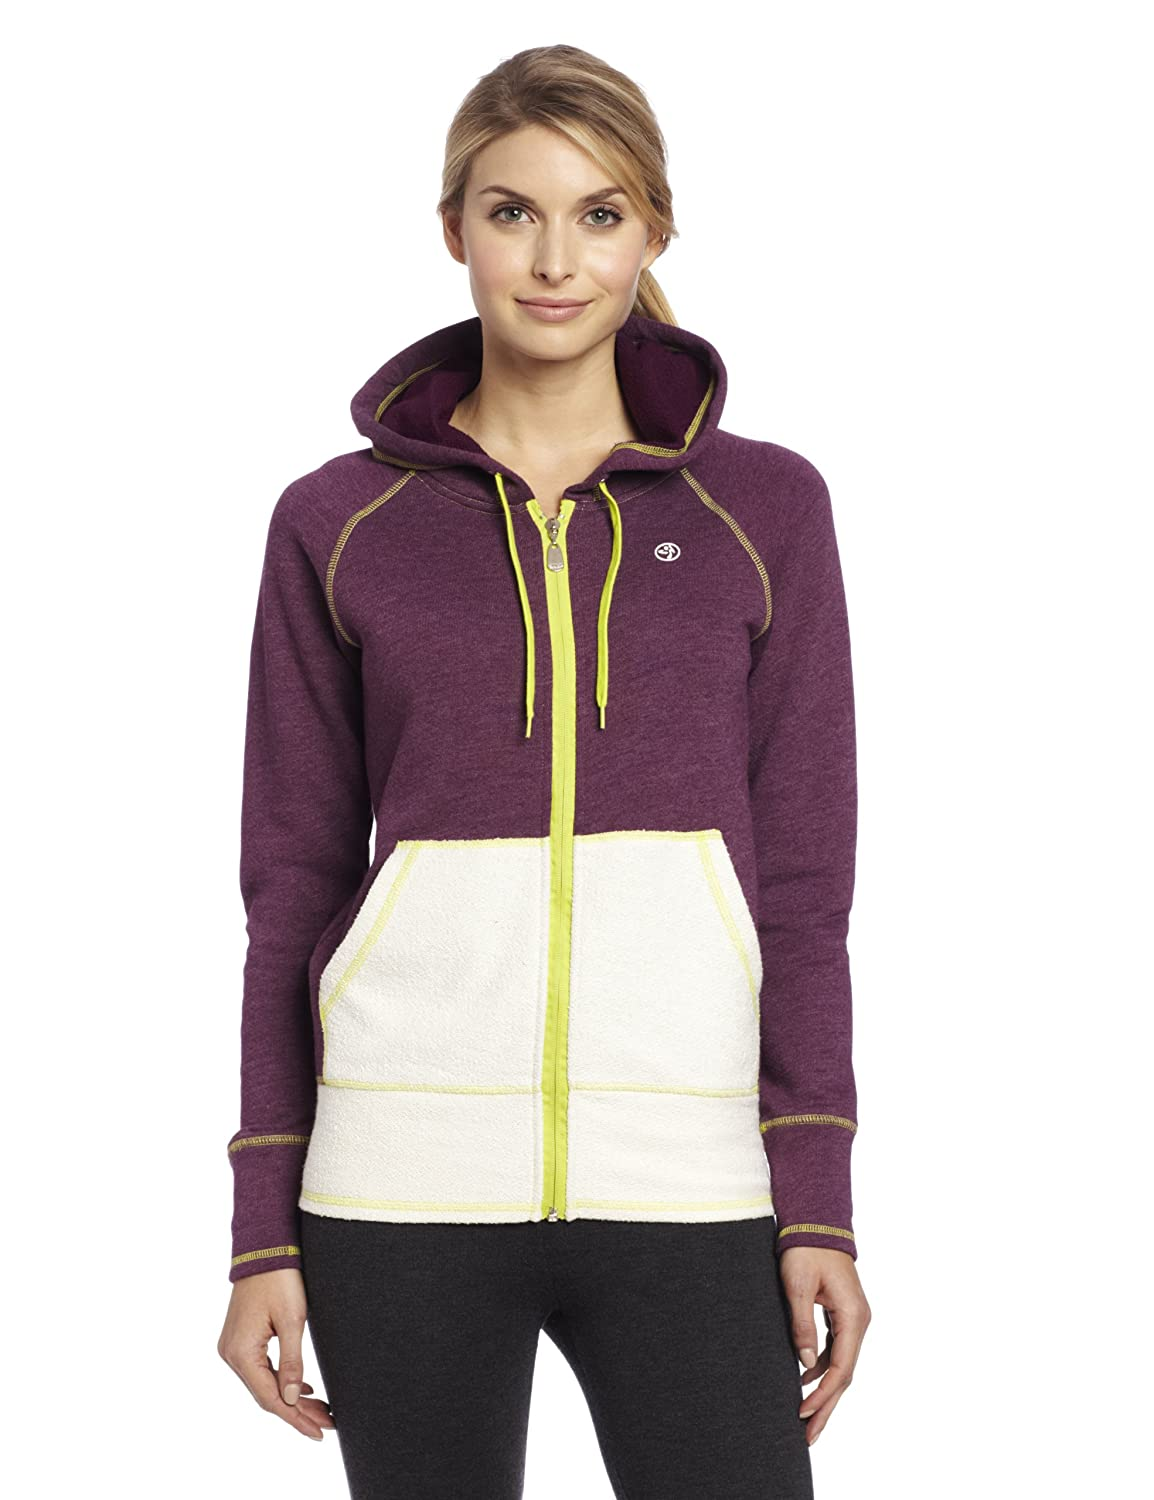 Zumba Fitness Captivate Zip Up Hoodie